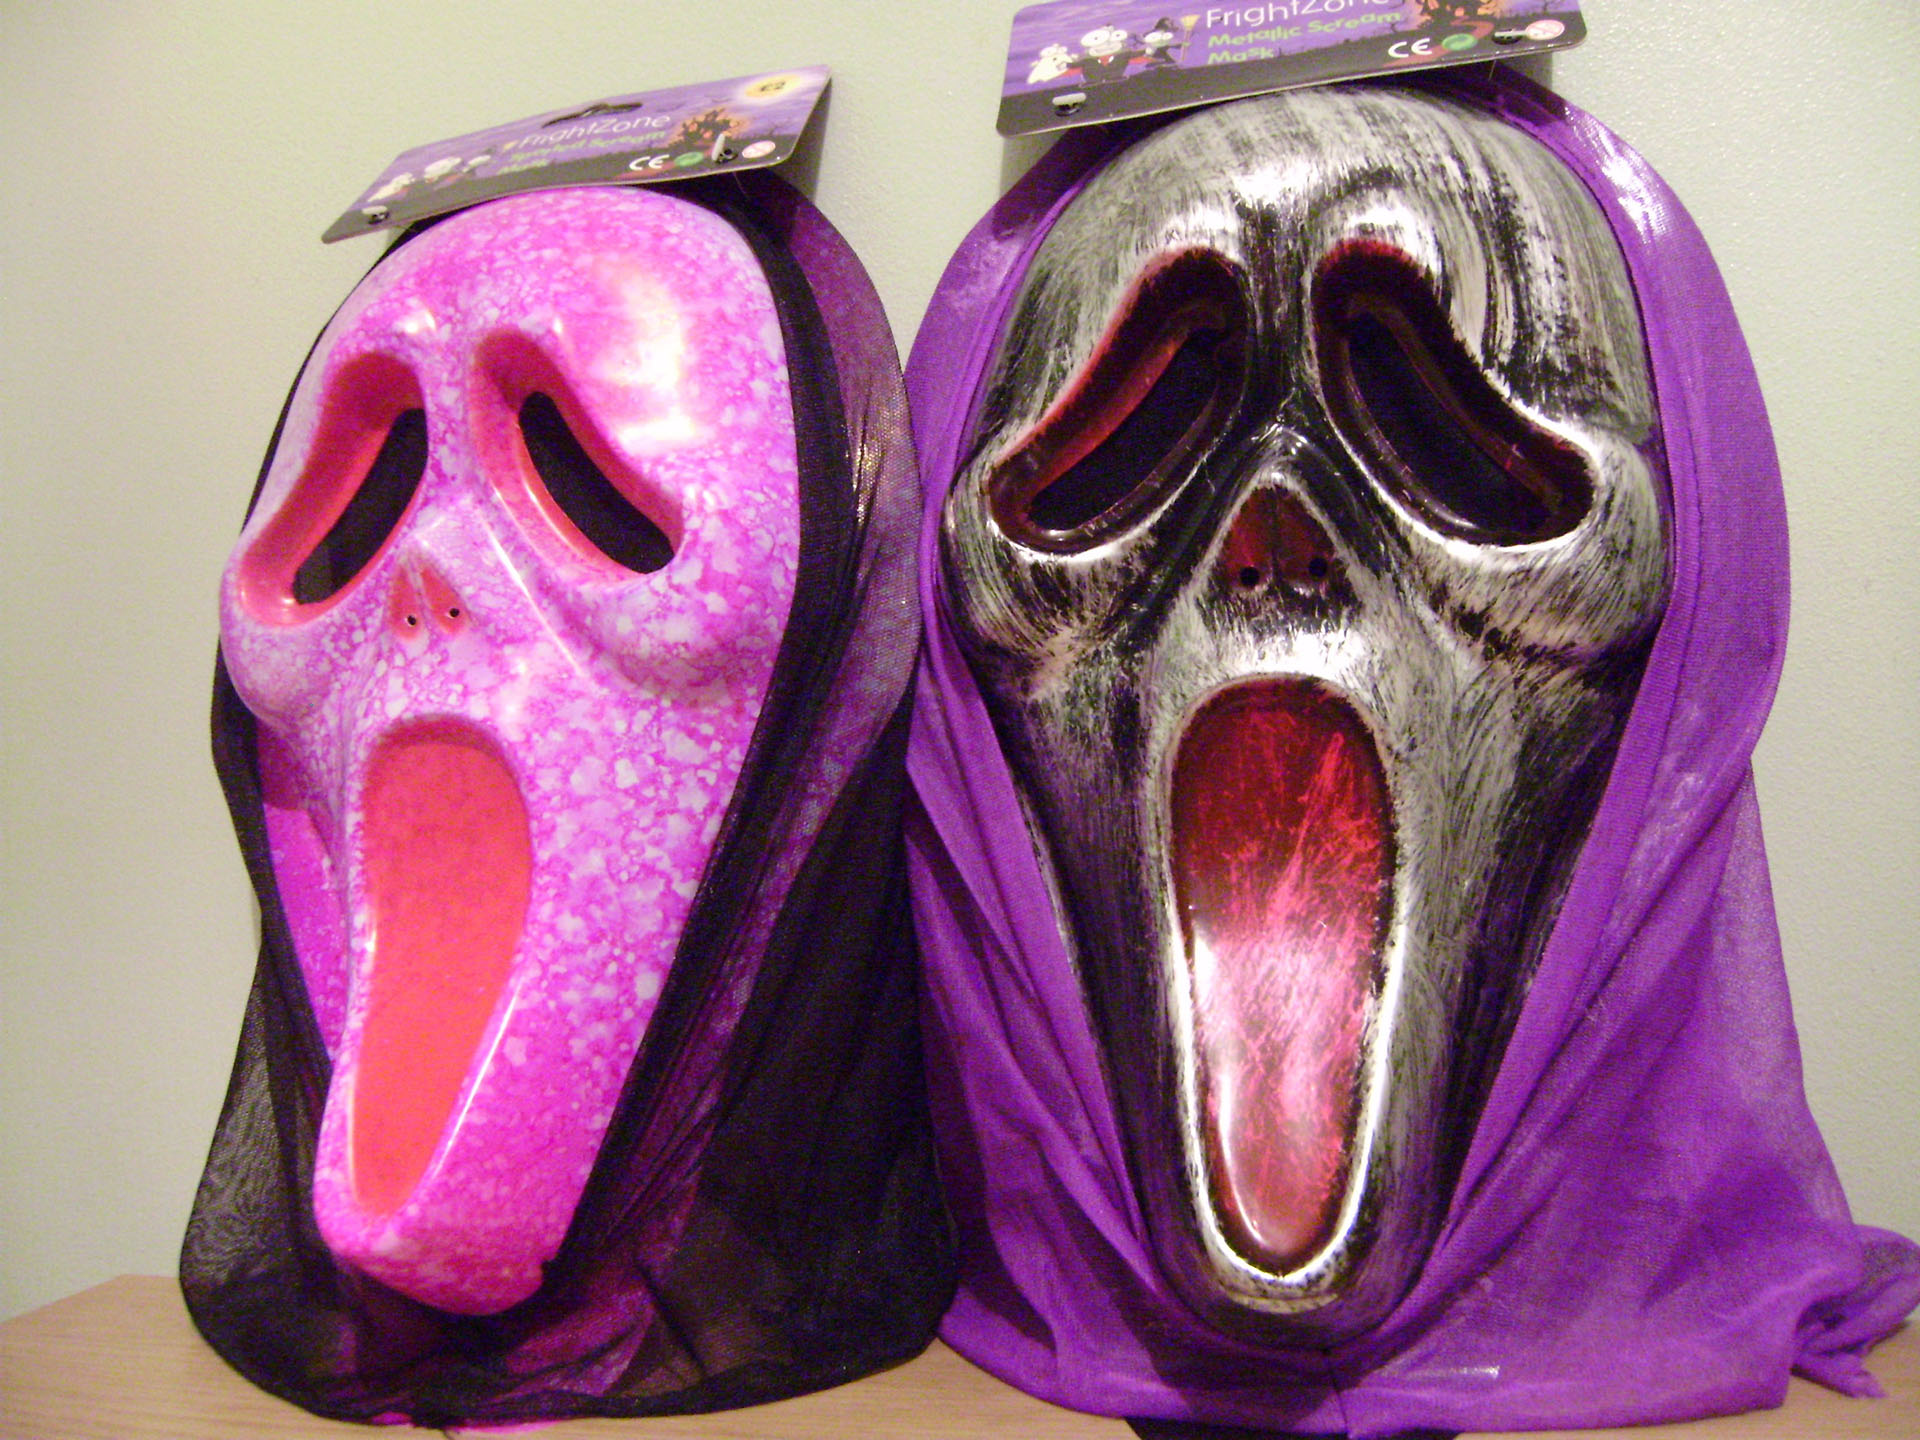 Halloween Is On The Way : The FrightZone Scream Masks ...